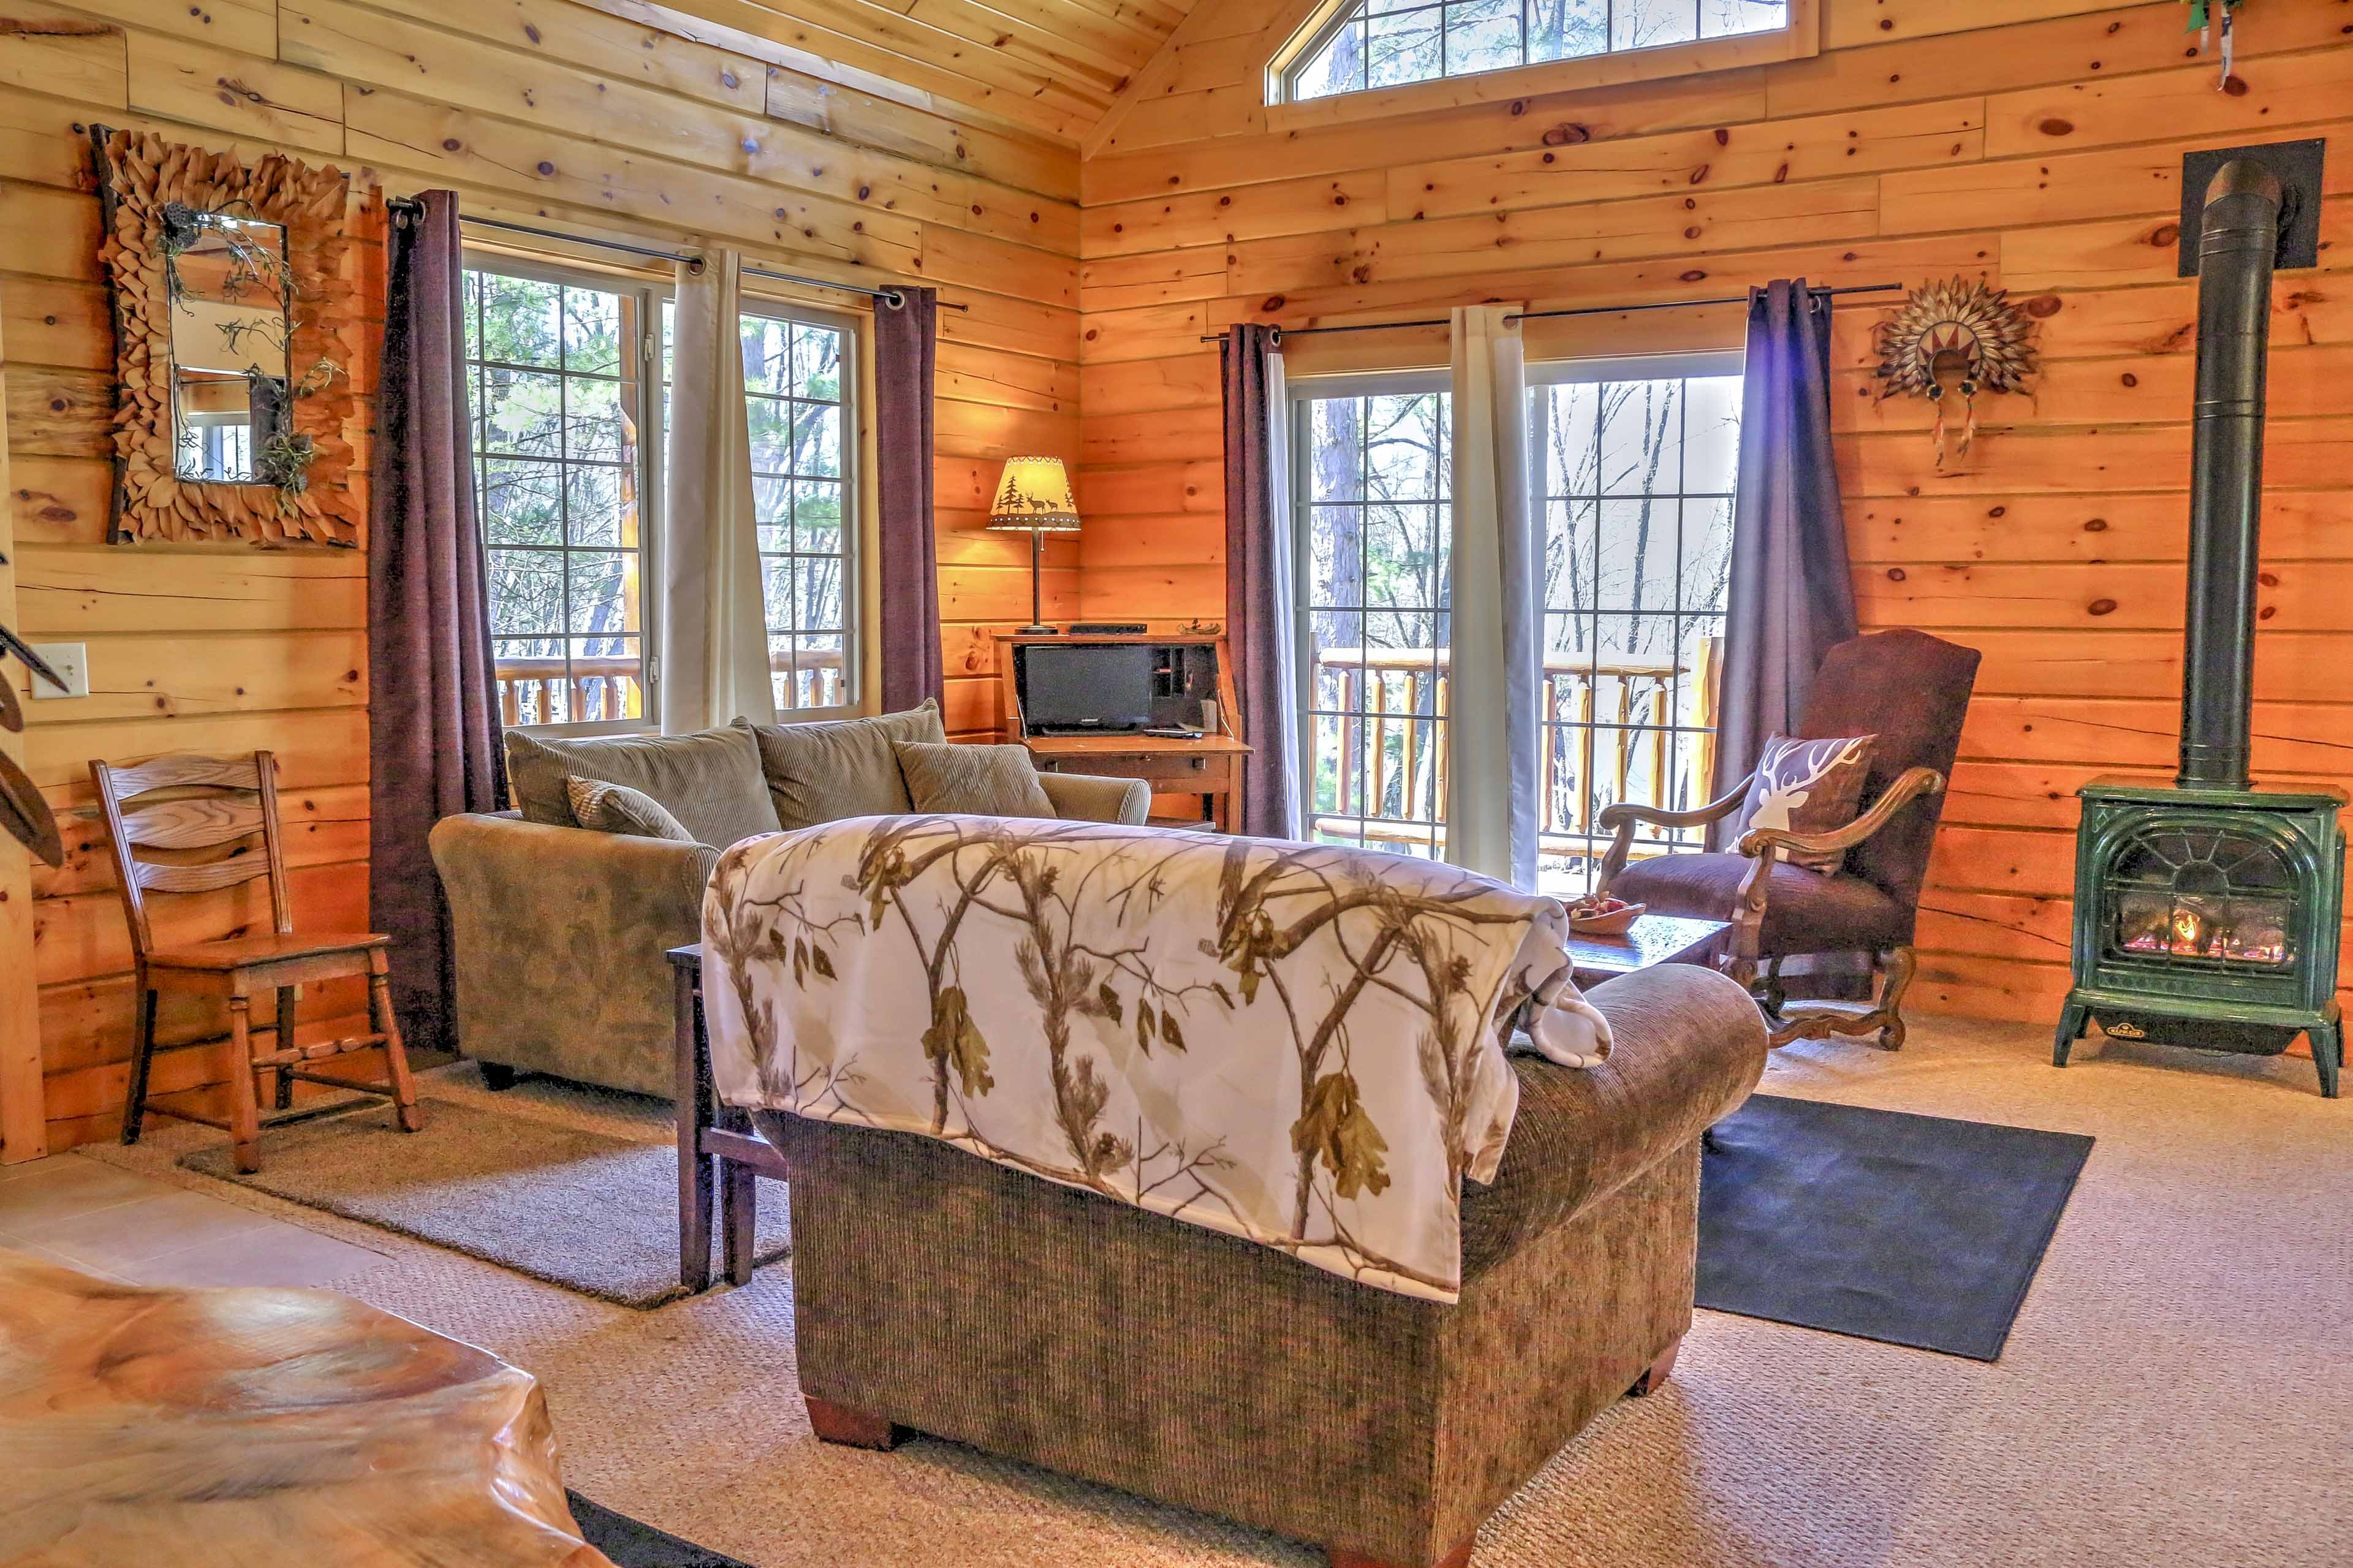 You'll feel right at home in this cozy cabin.